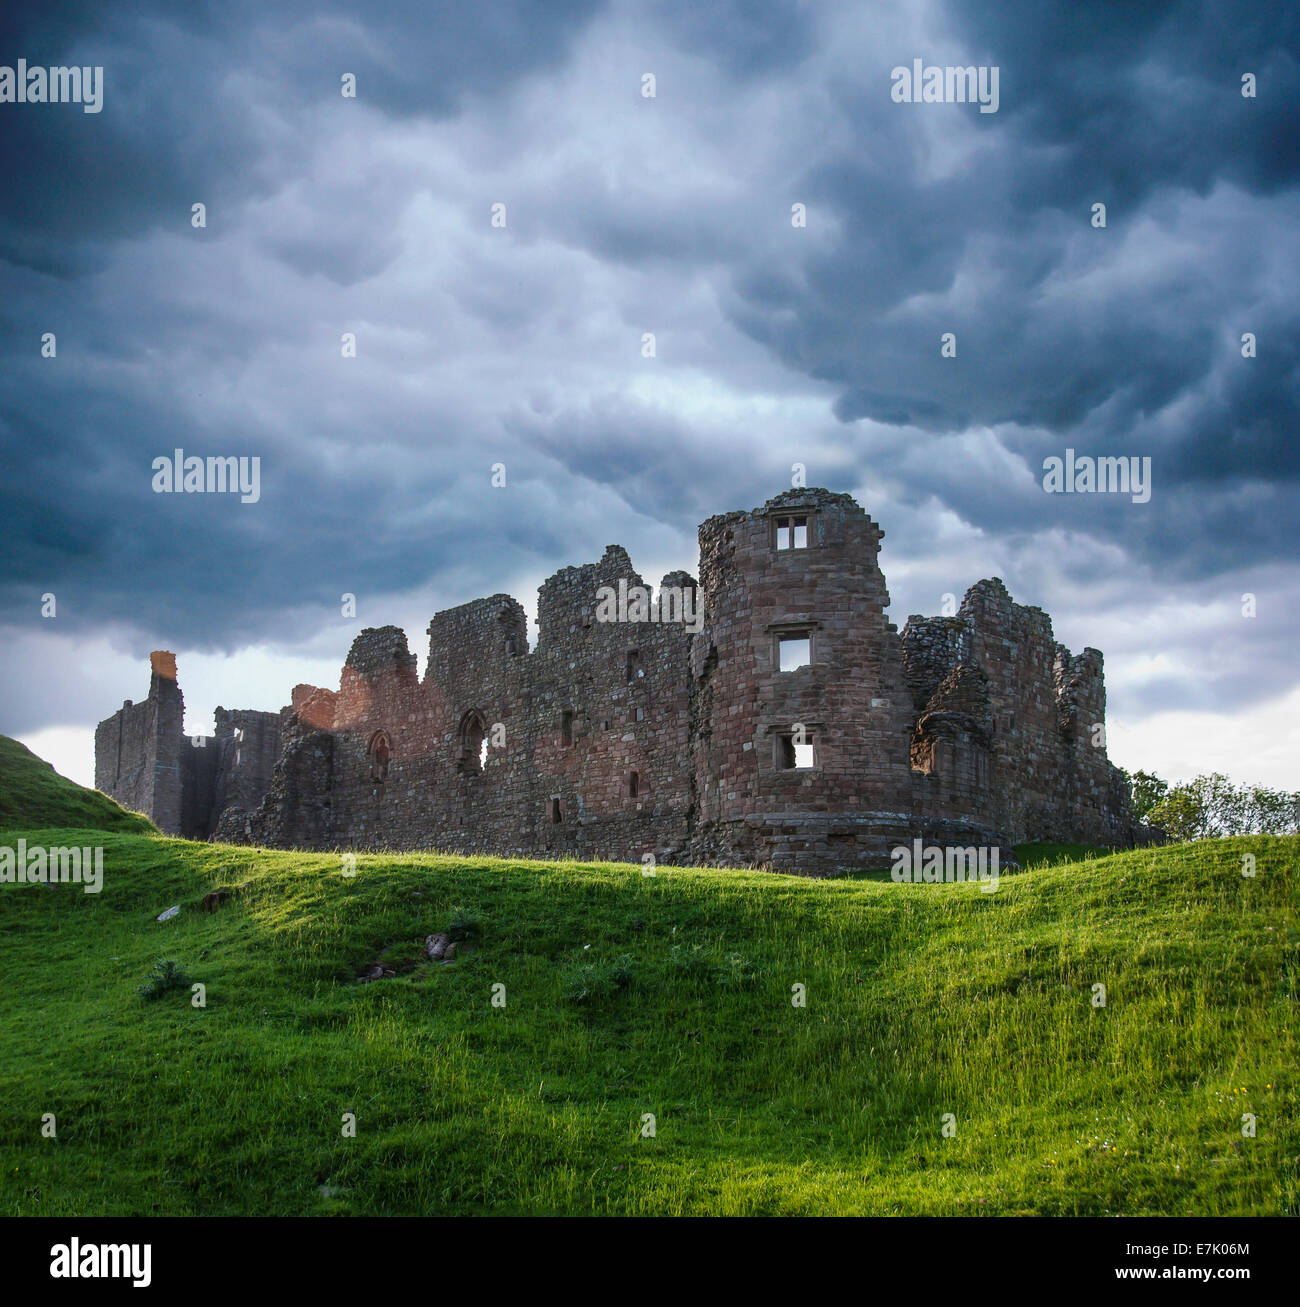 Built in 1090, ruined castle in the village of Brough, Cumbria, England - Stock Image